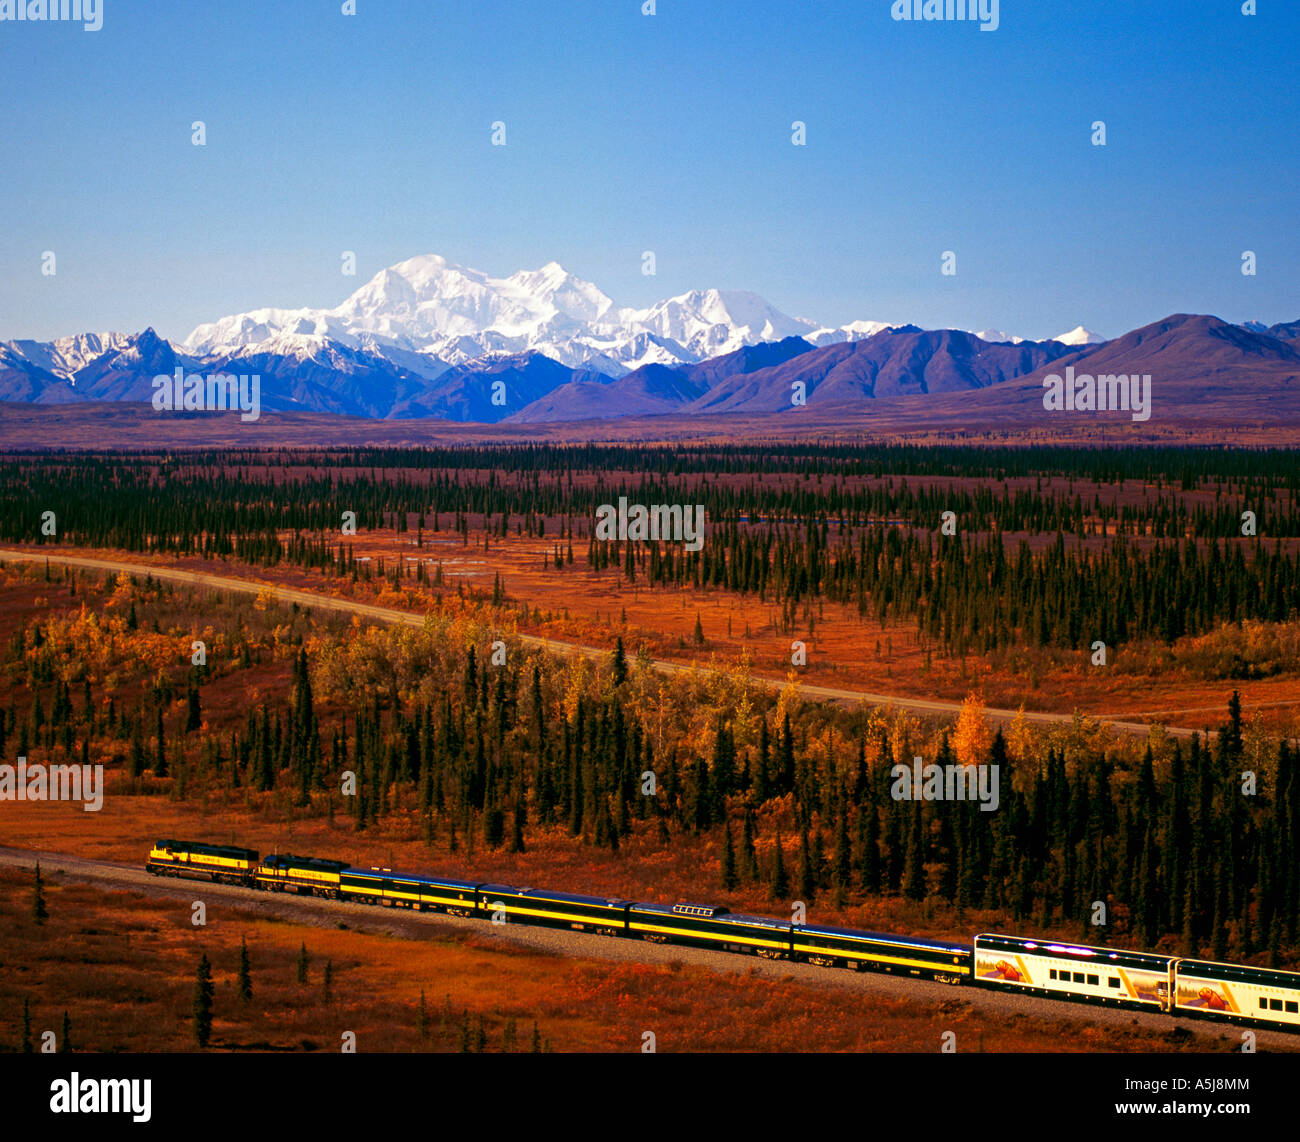 Alaska Railroad southbound train at the summit, with Mt McKinley and the Alaska Range in the background - Stock Image